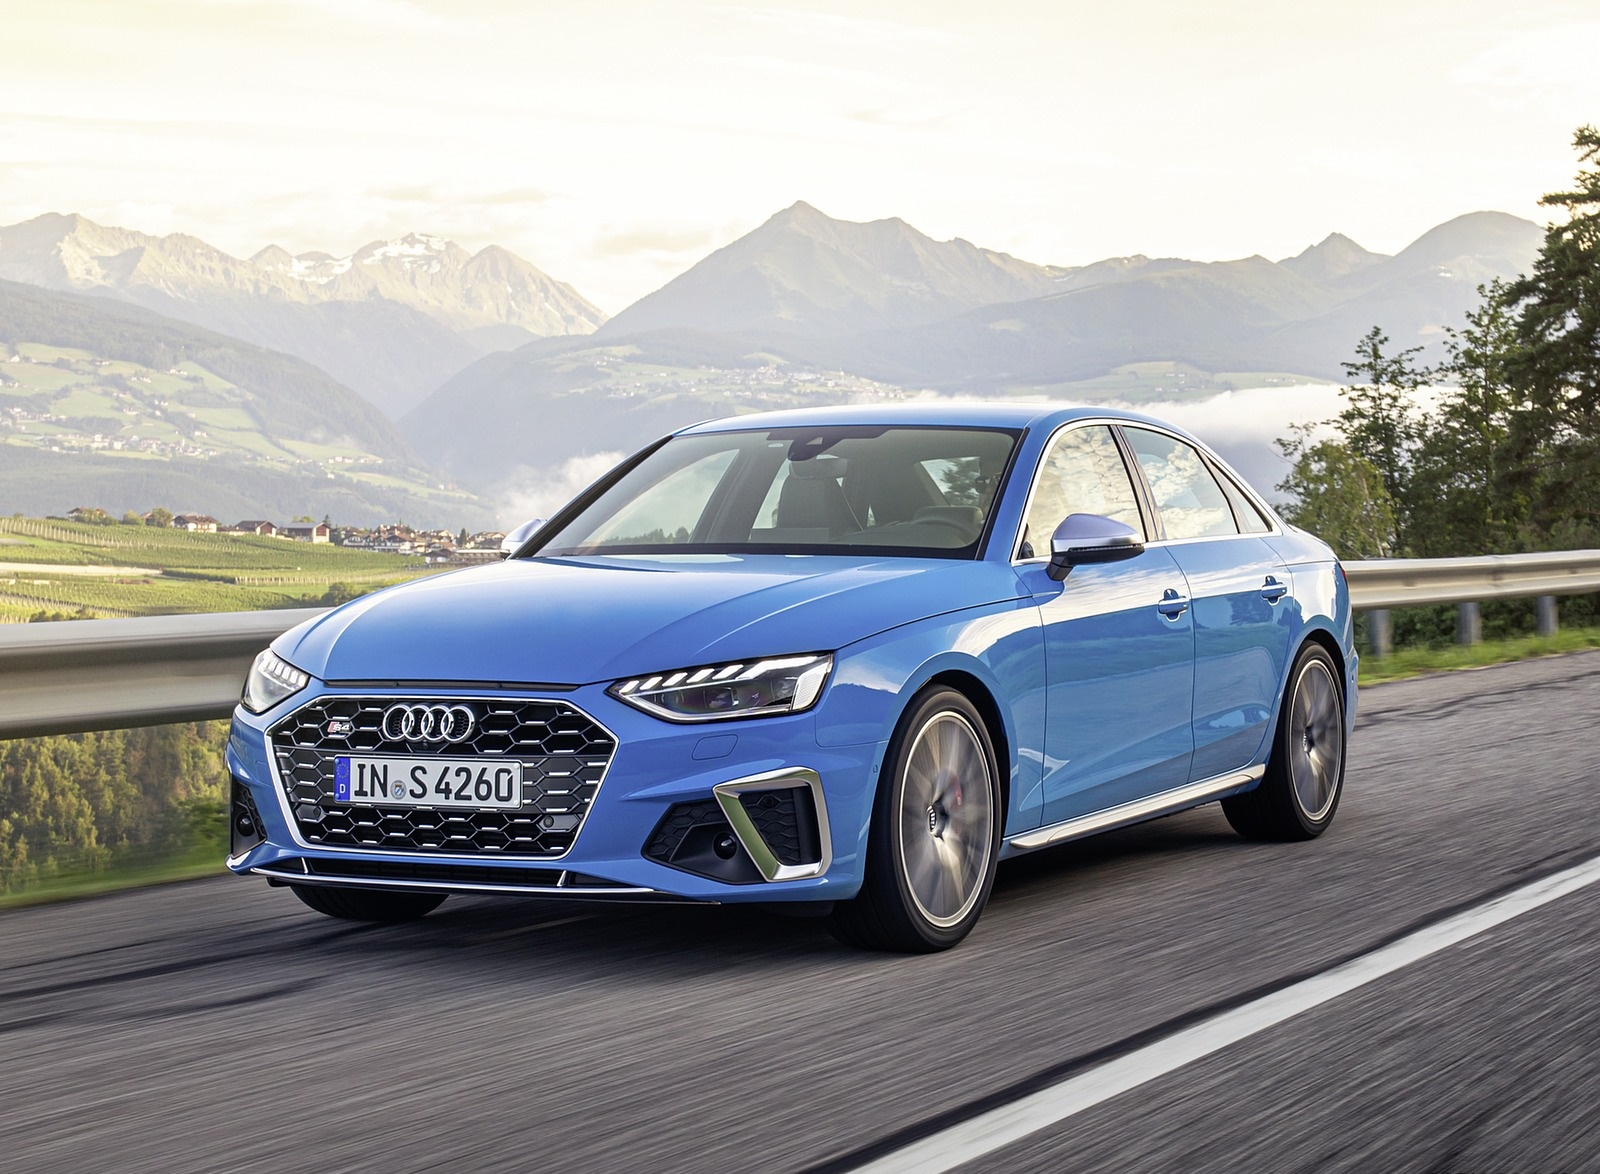 2019 Audi S4 TDI (Color: Turbo Blue) Front Three-Quarter Wallpapers (3)